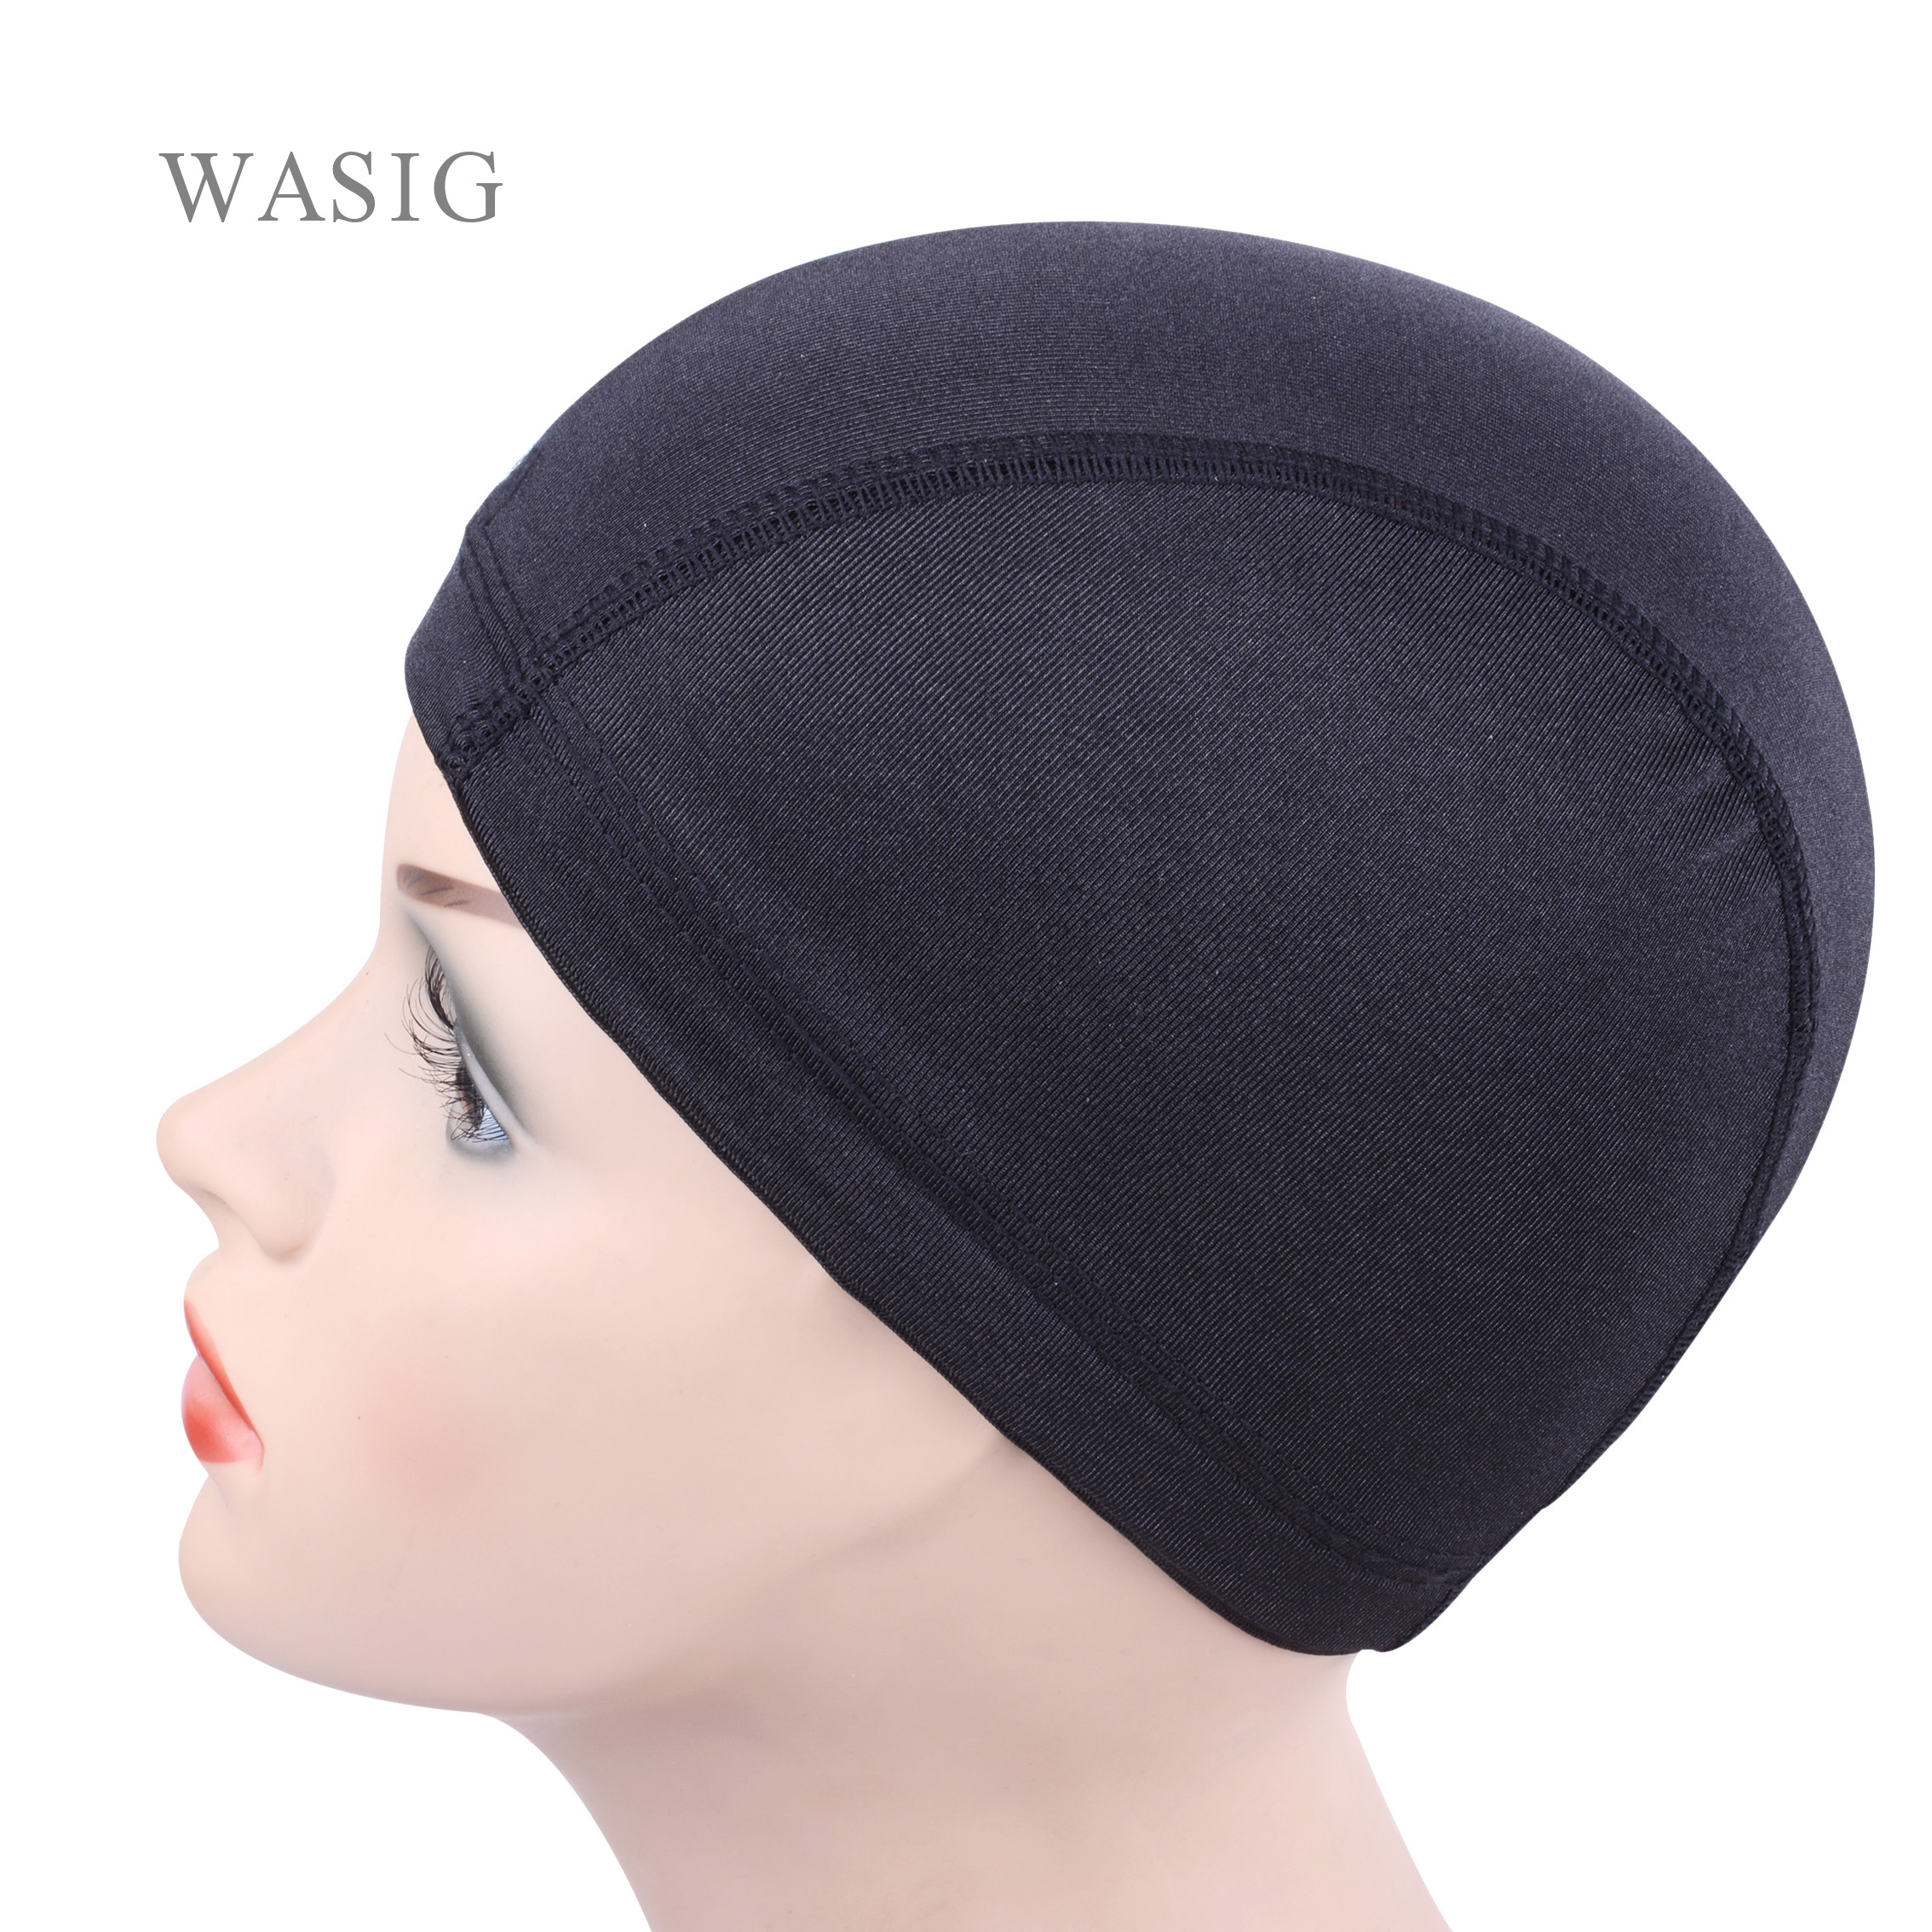 12pcs Glueless Hair Net Wig Liner Cheap Wig Caps For Making Wigs Spandex Net Elastic Dome Wig Cap